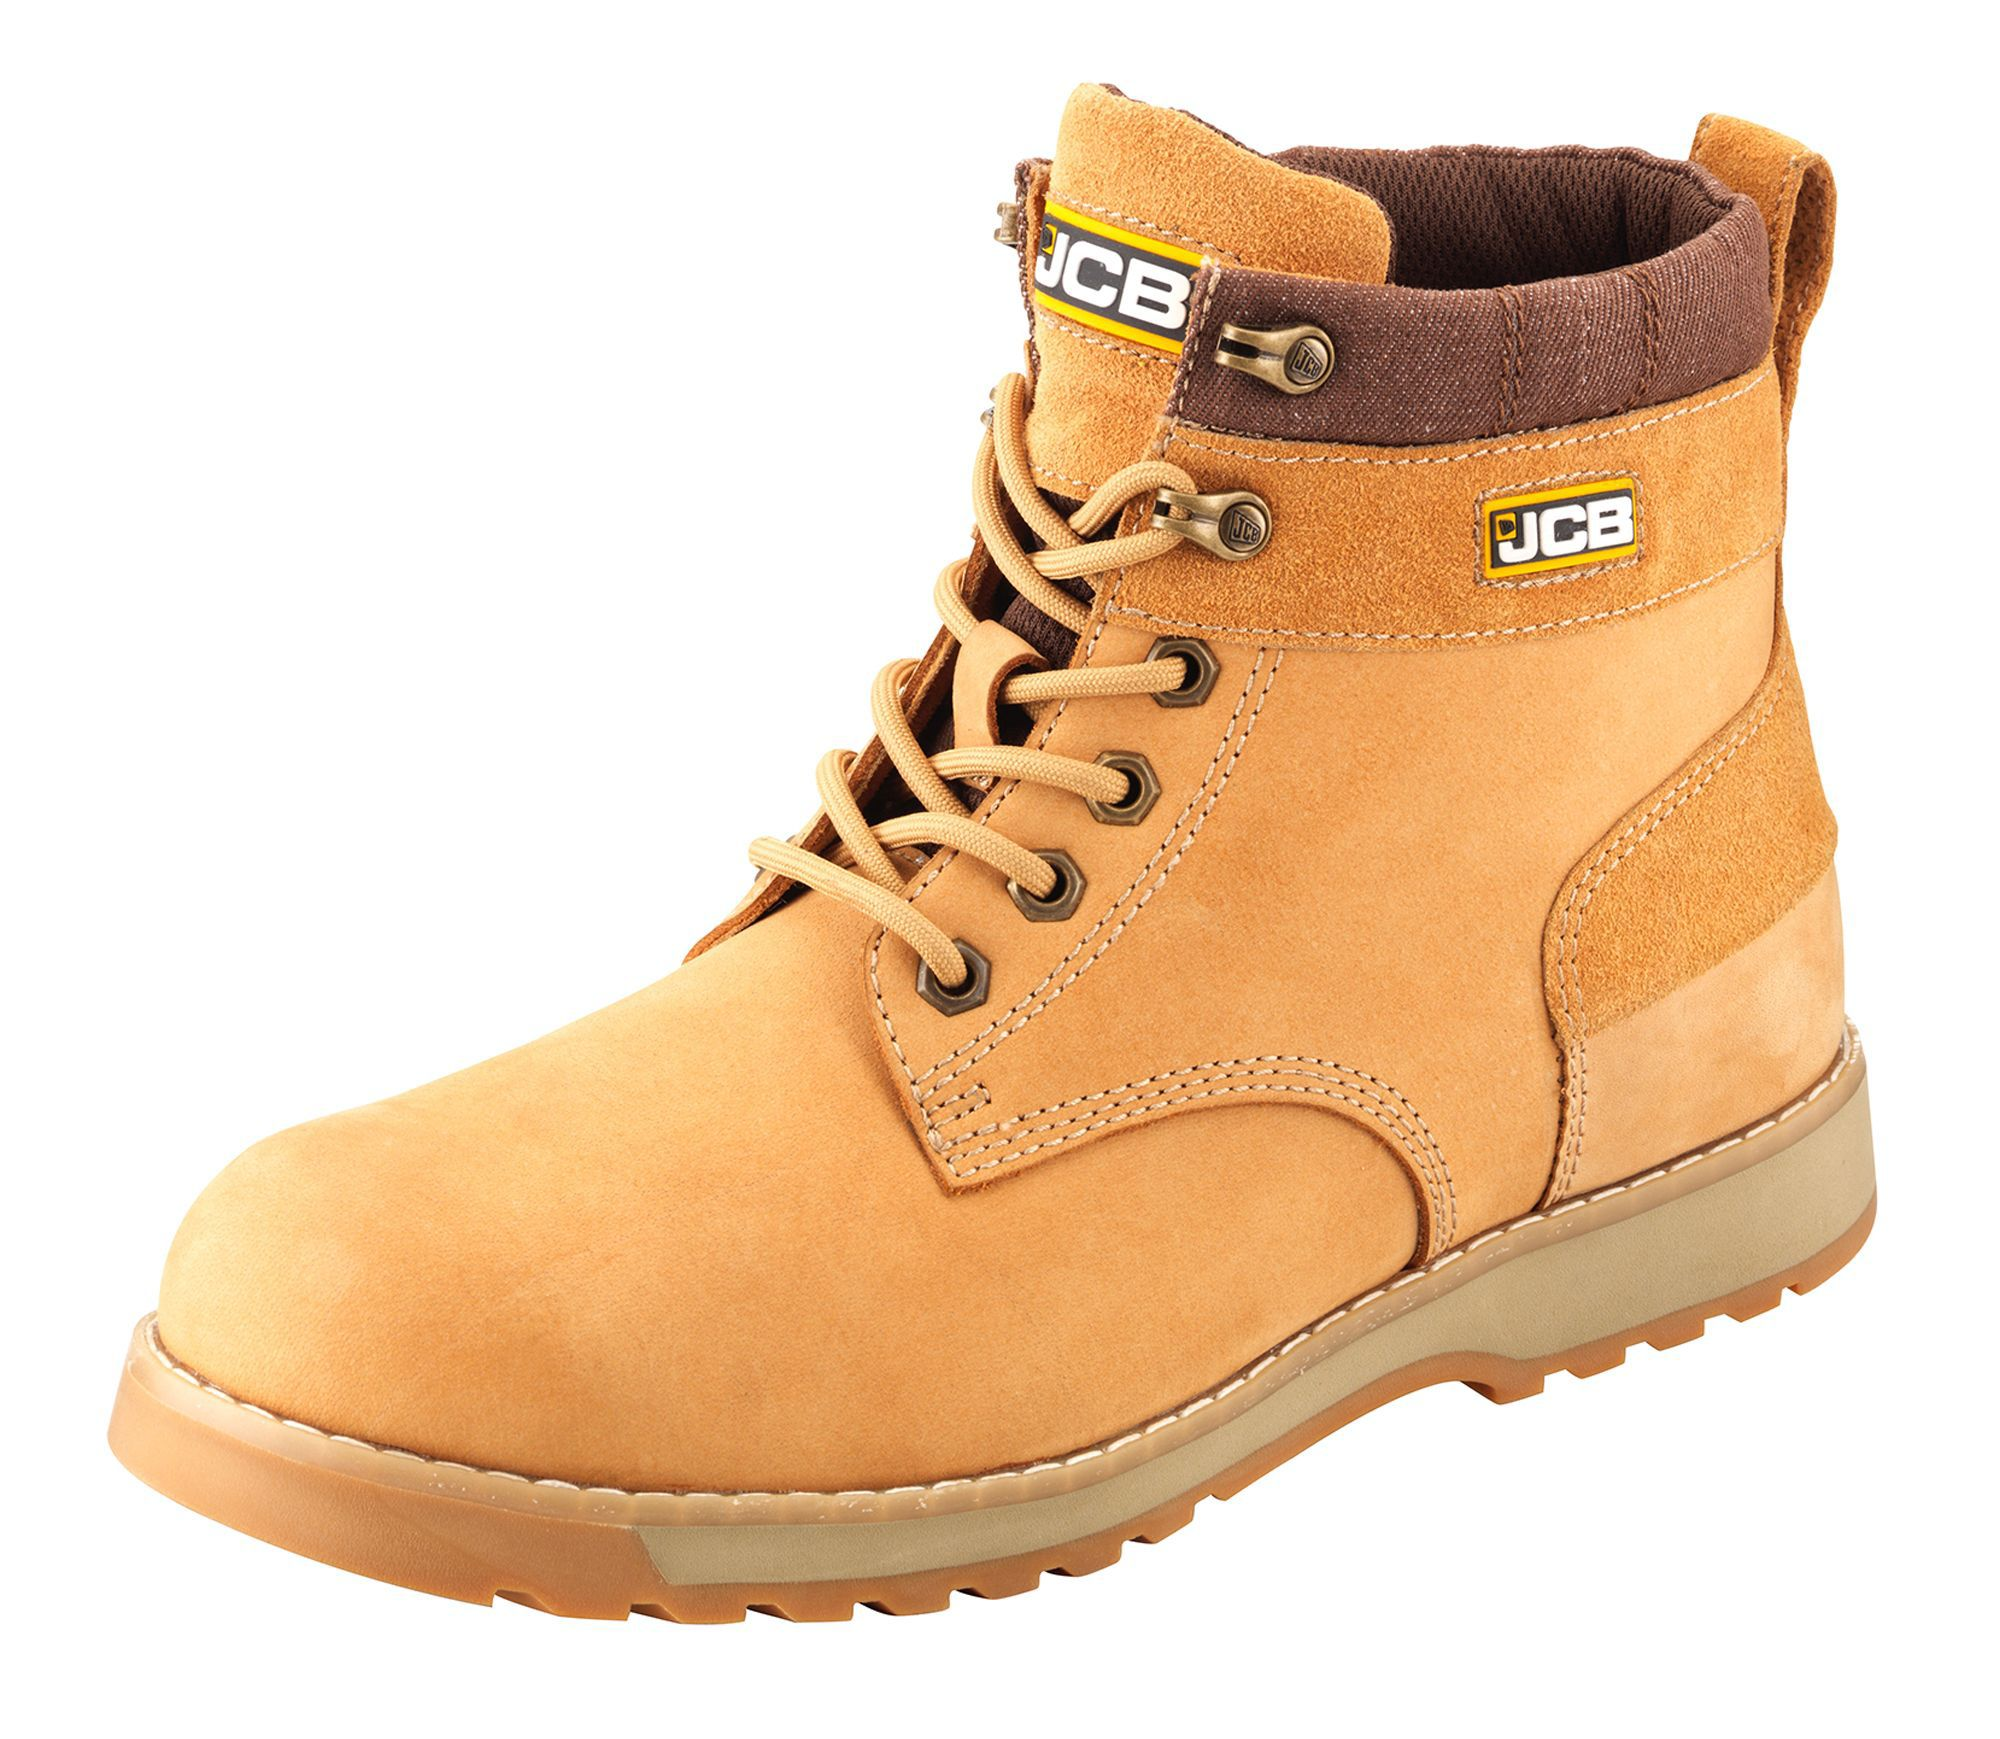 Jcb Honey 5cx Boots, Size 8